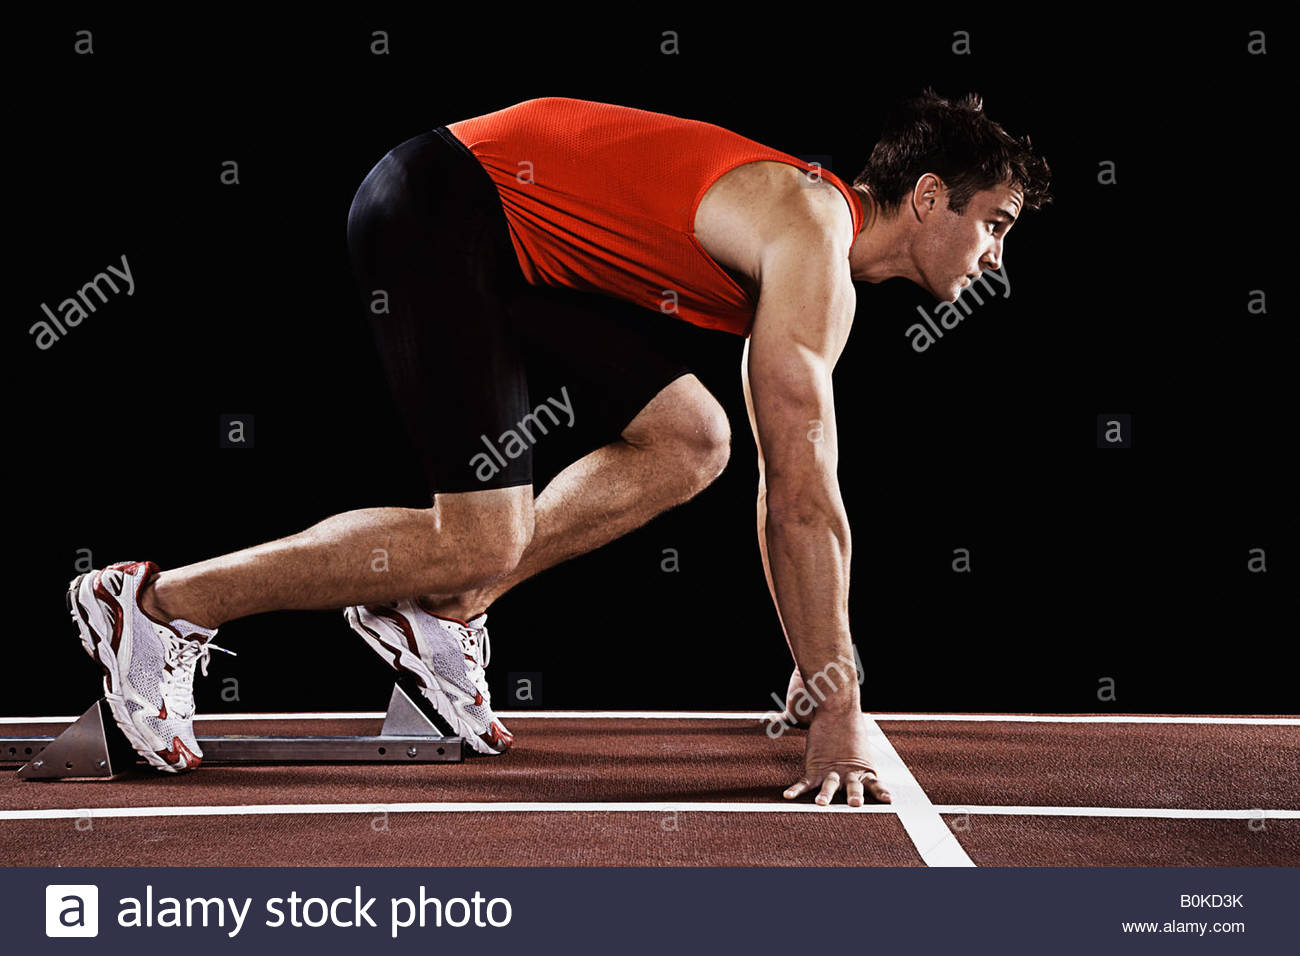 Runner on race track at his mark - Stock Image